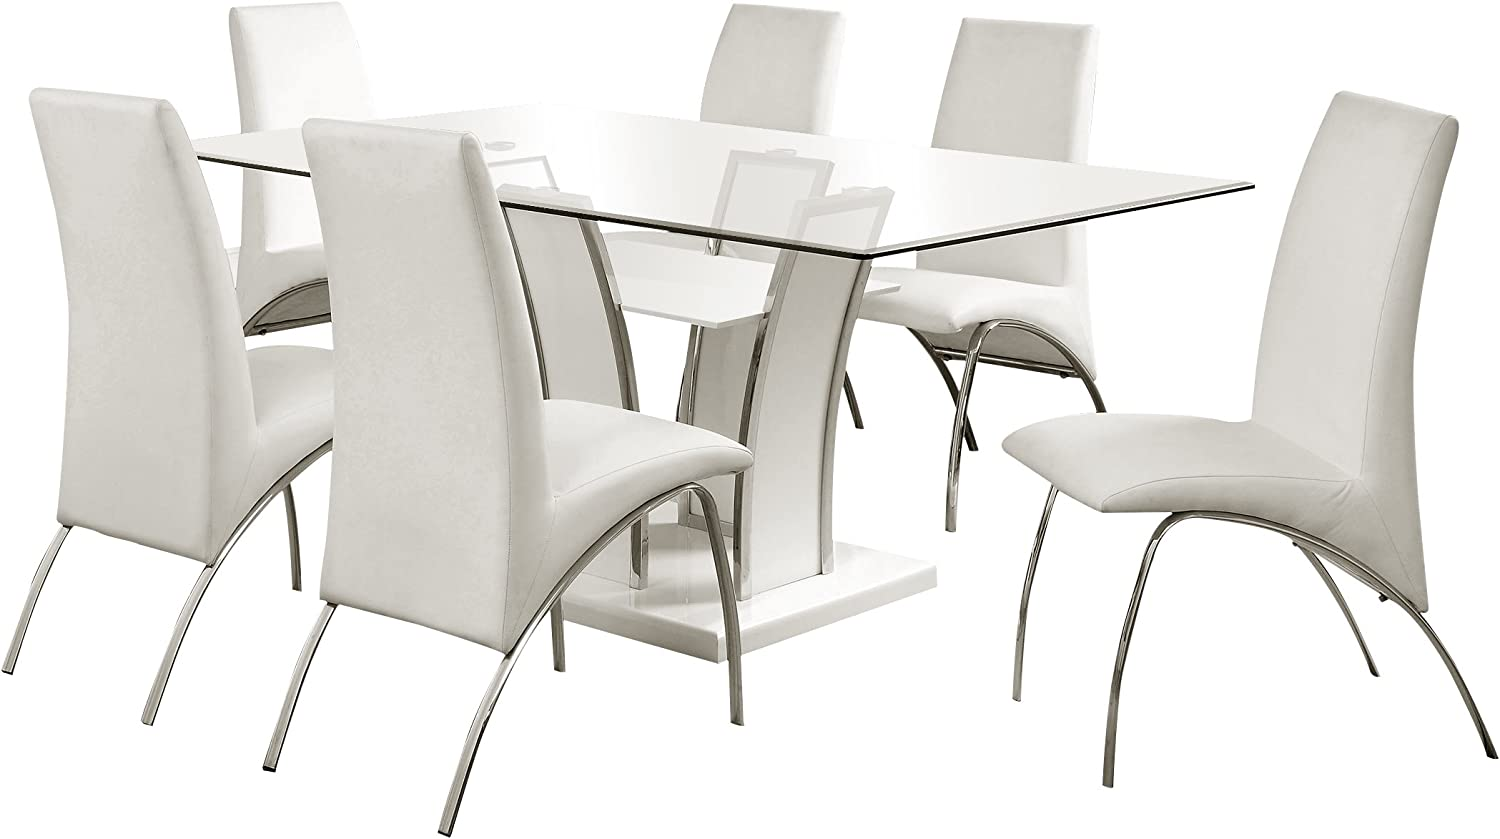 247SHOPATHOME Dining room set, White